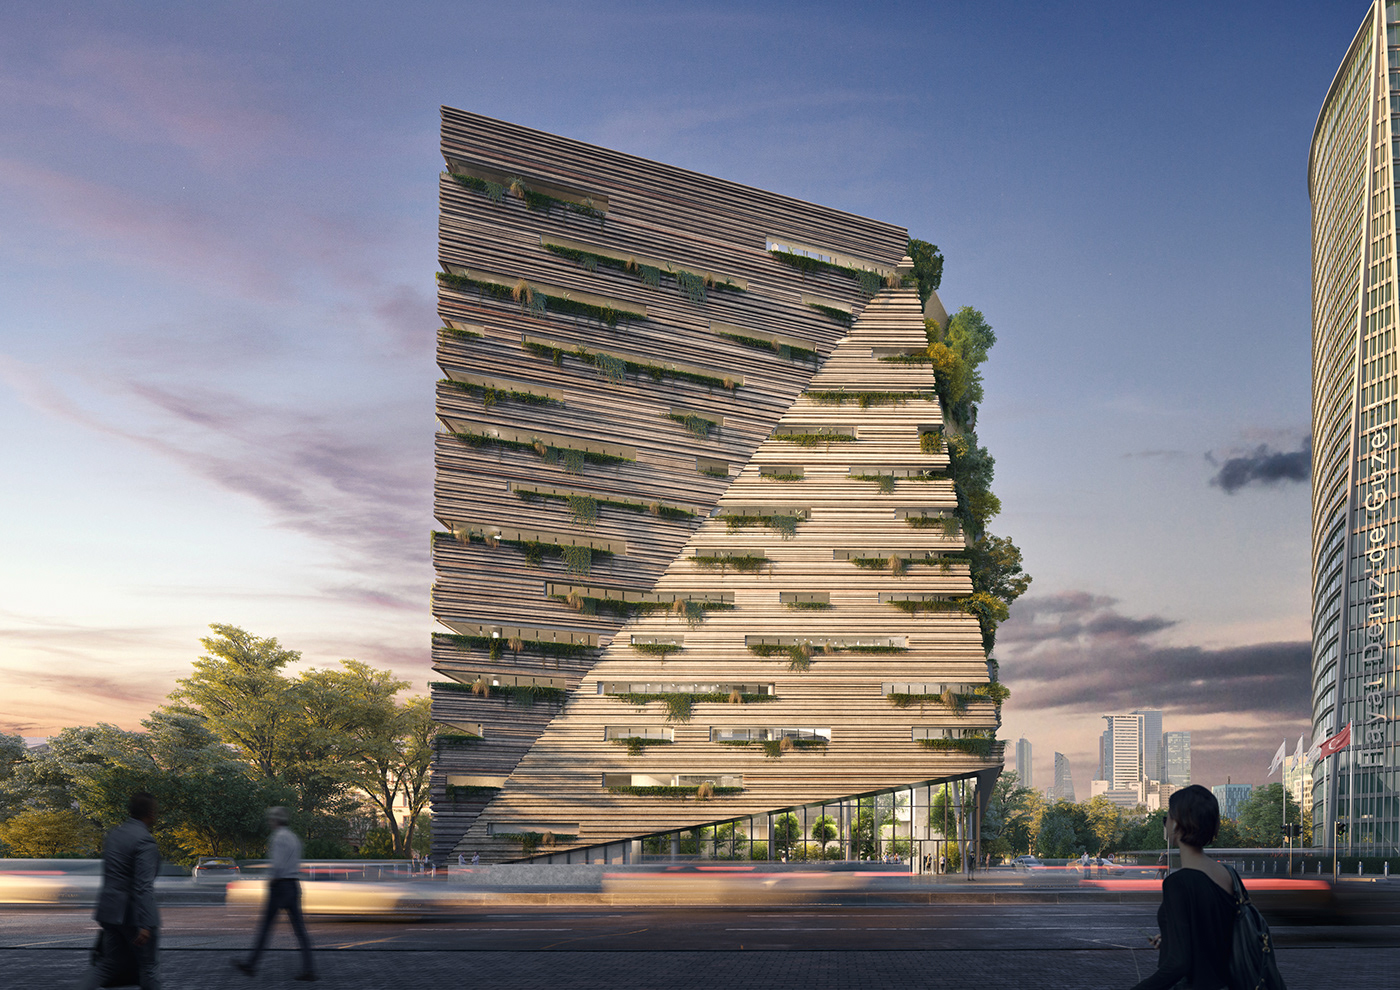 The whole idea for the building was to resemble a monolith carved out and rising from the earth